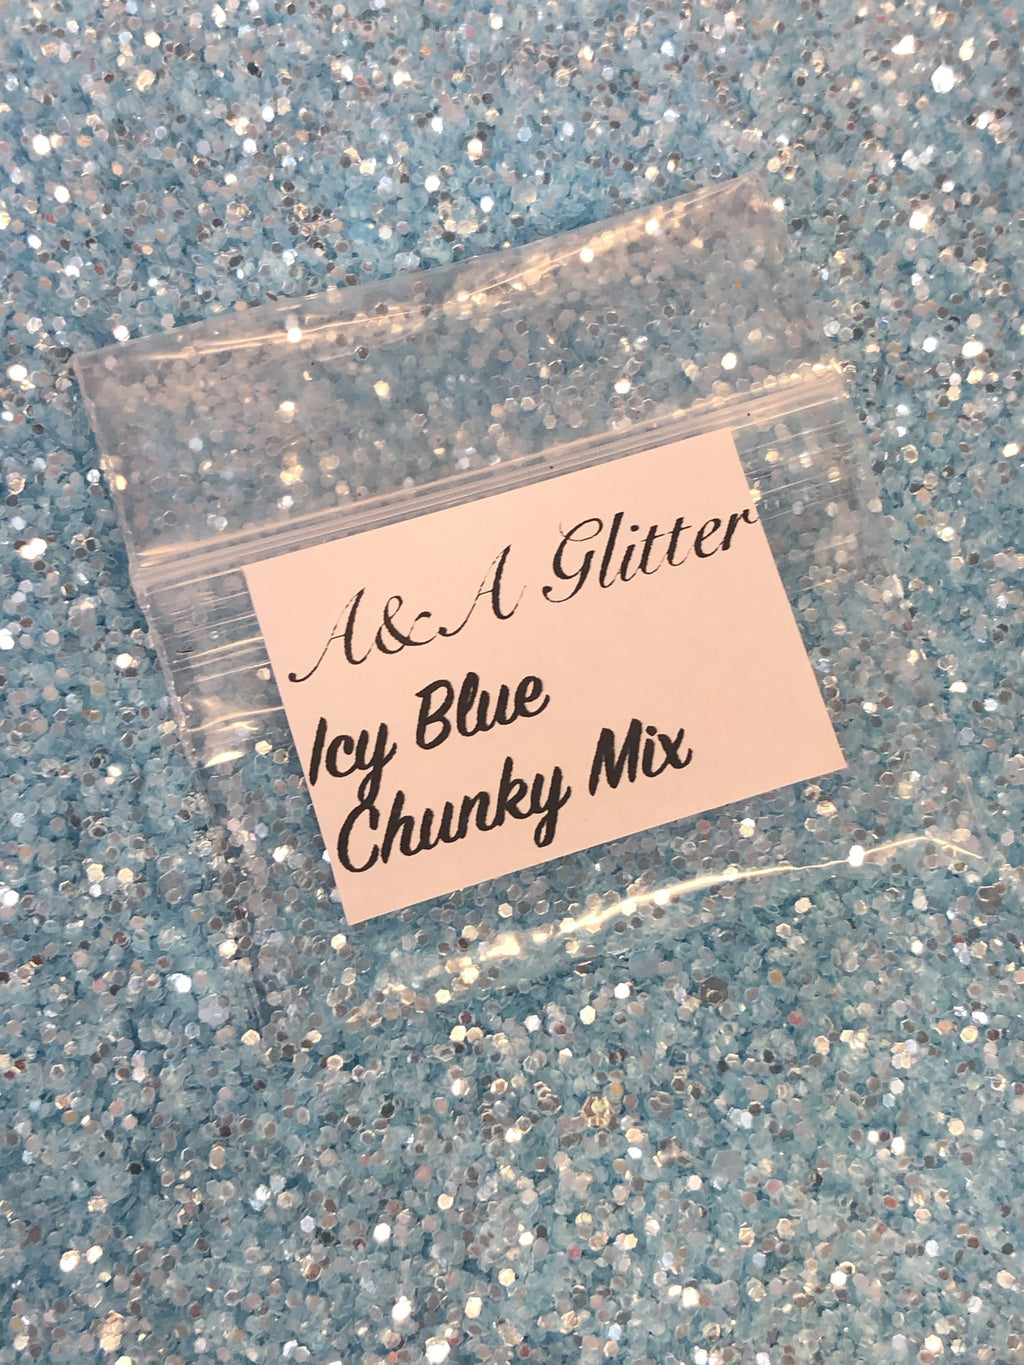 Icy Blue - Chunky Mix